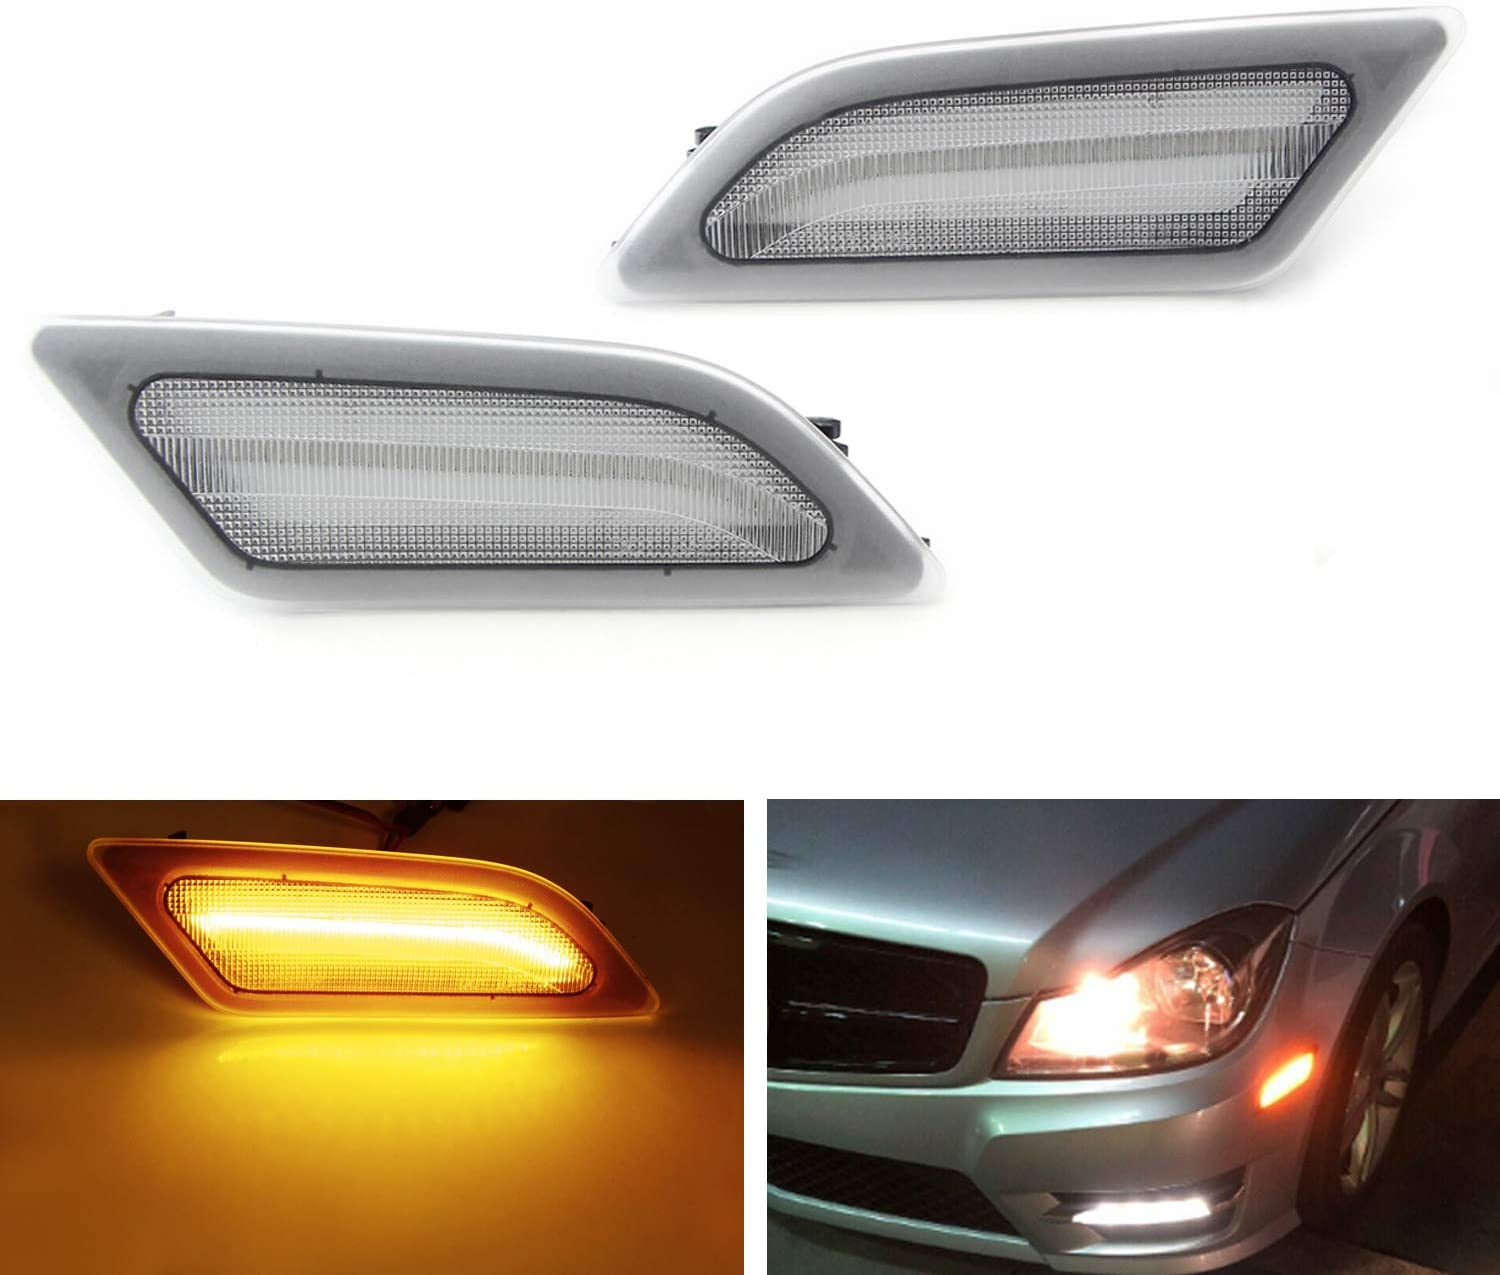 Replace OEM Sidemarker Lamps iJDMTOY Smoked Lens Amber Full LED Front Side Marker Light Kit For 2008-11 Mercedes W204 C250 C300 C350 /& 2008-2013 C63 AMG Powered by SMD LED